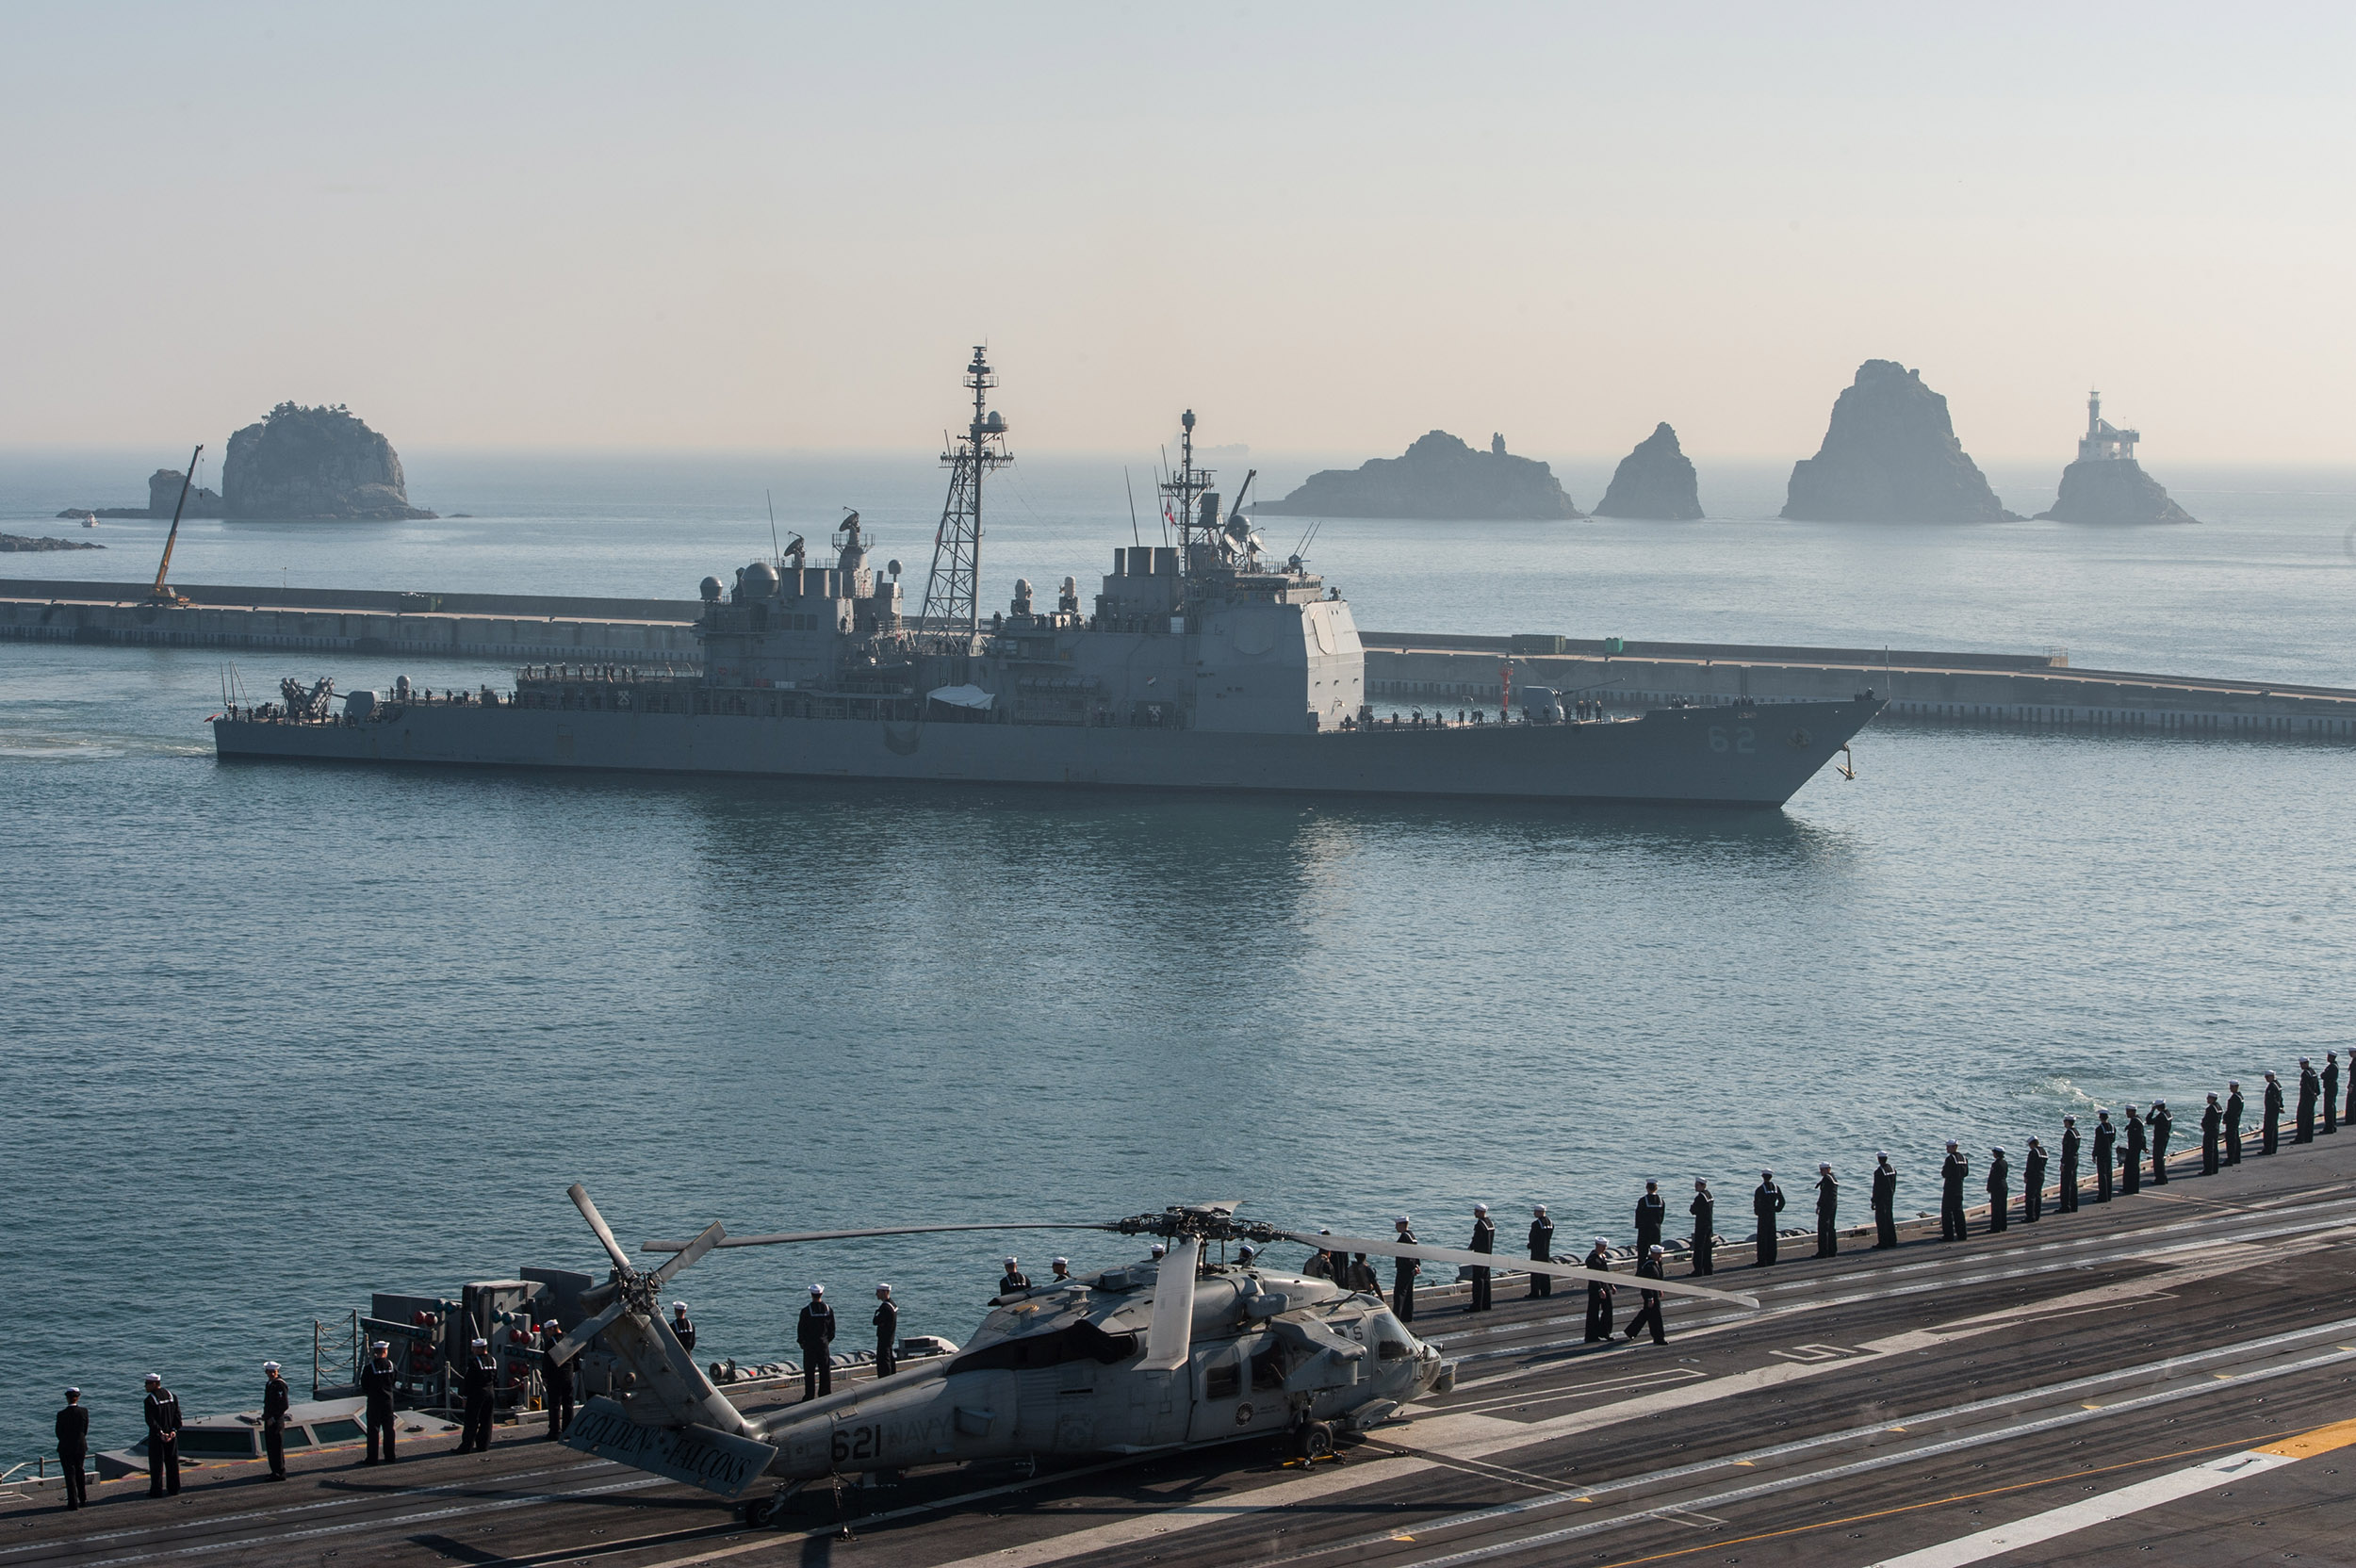 Sailors man the rails as the U.S. Navy's only forward-deployed aircraft carrier USS Ronald Reagan (CVN 76) and the Ticonderoga-class guided-missile cruiser USS Chancellorsville (CG 52) depart Busan in 2014. US Navy Photo